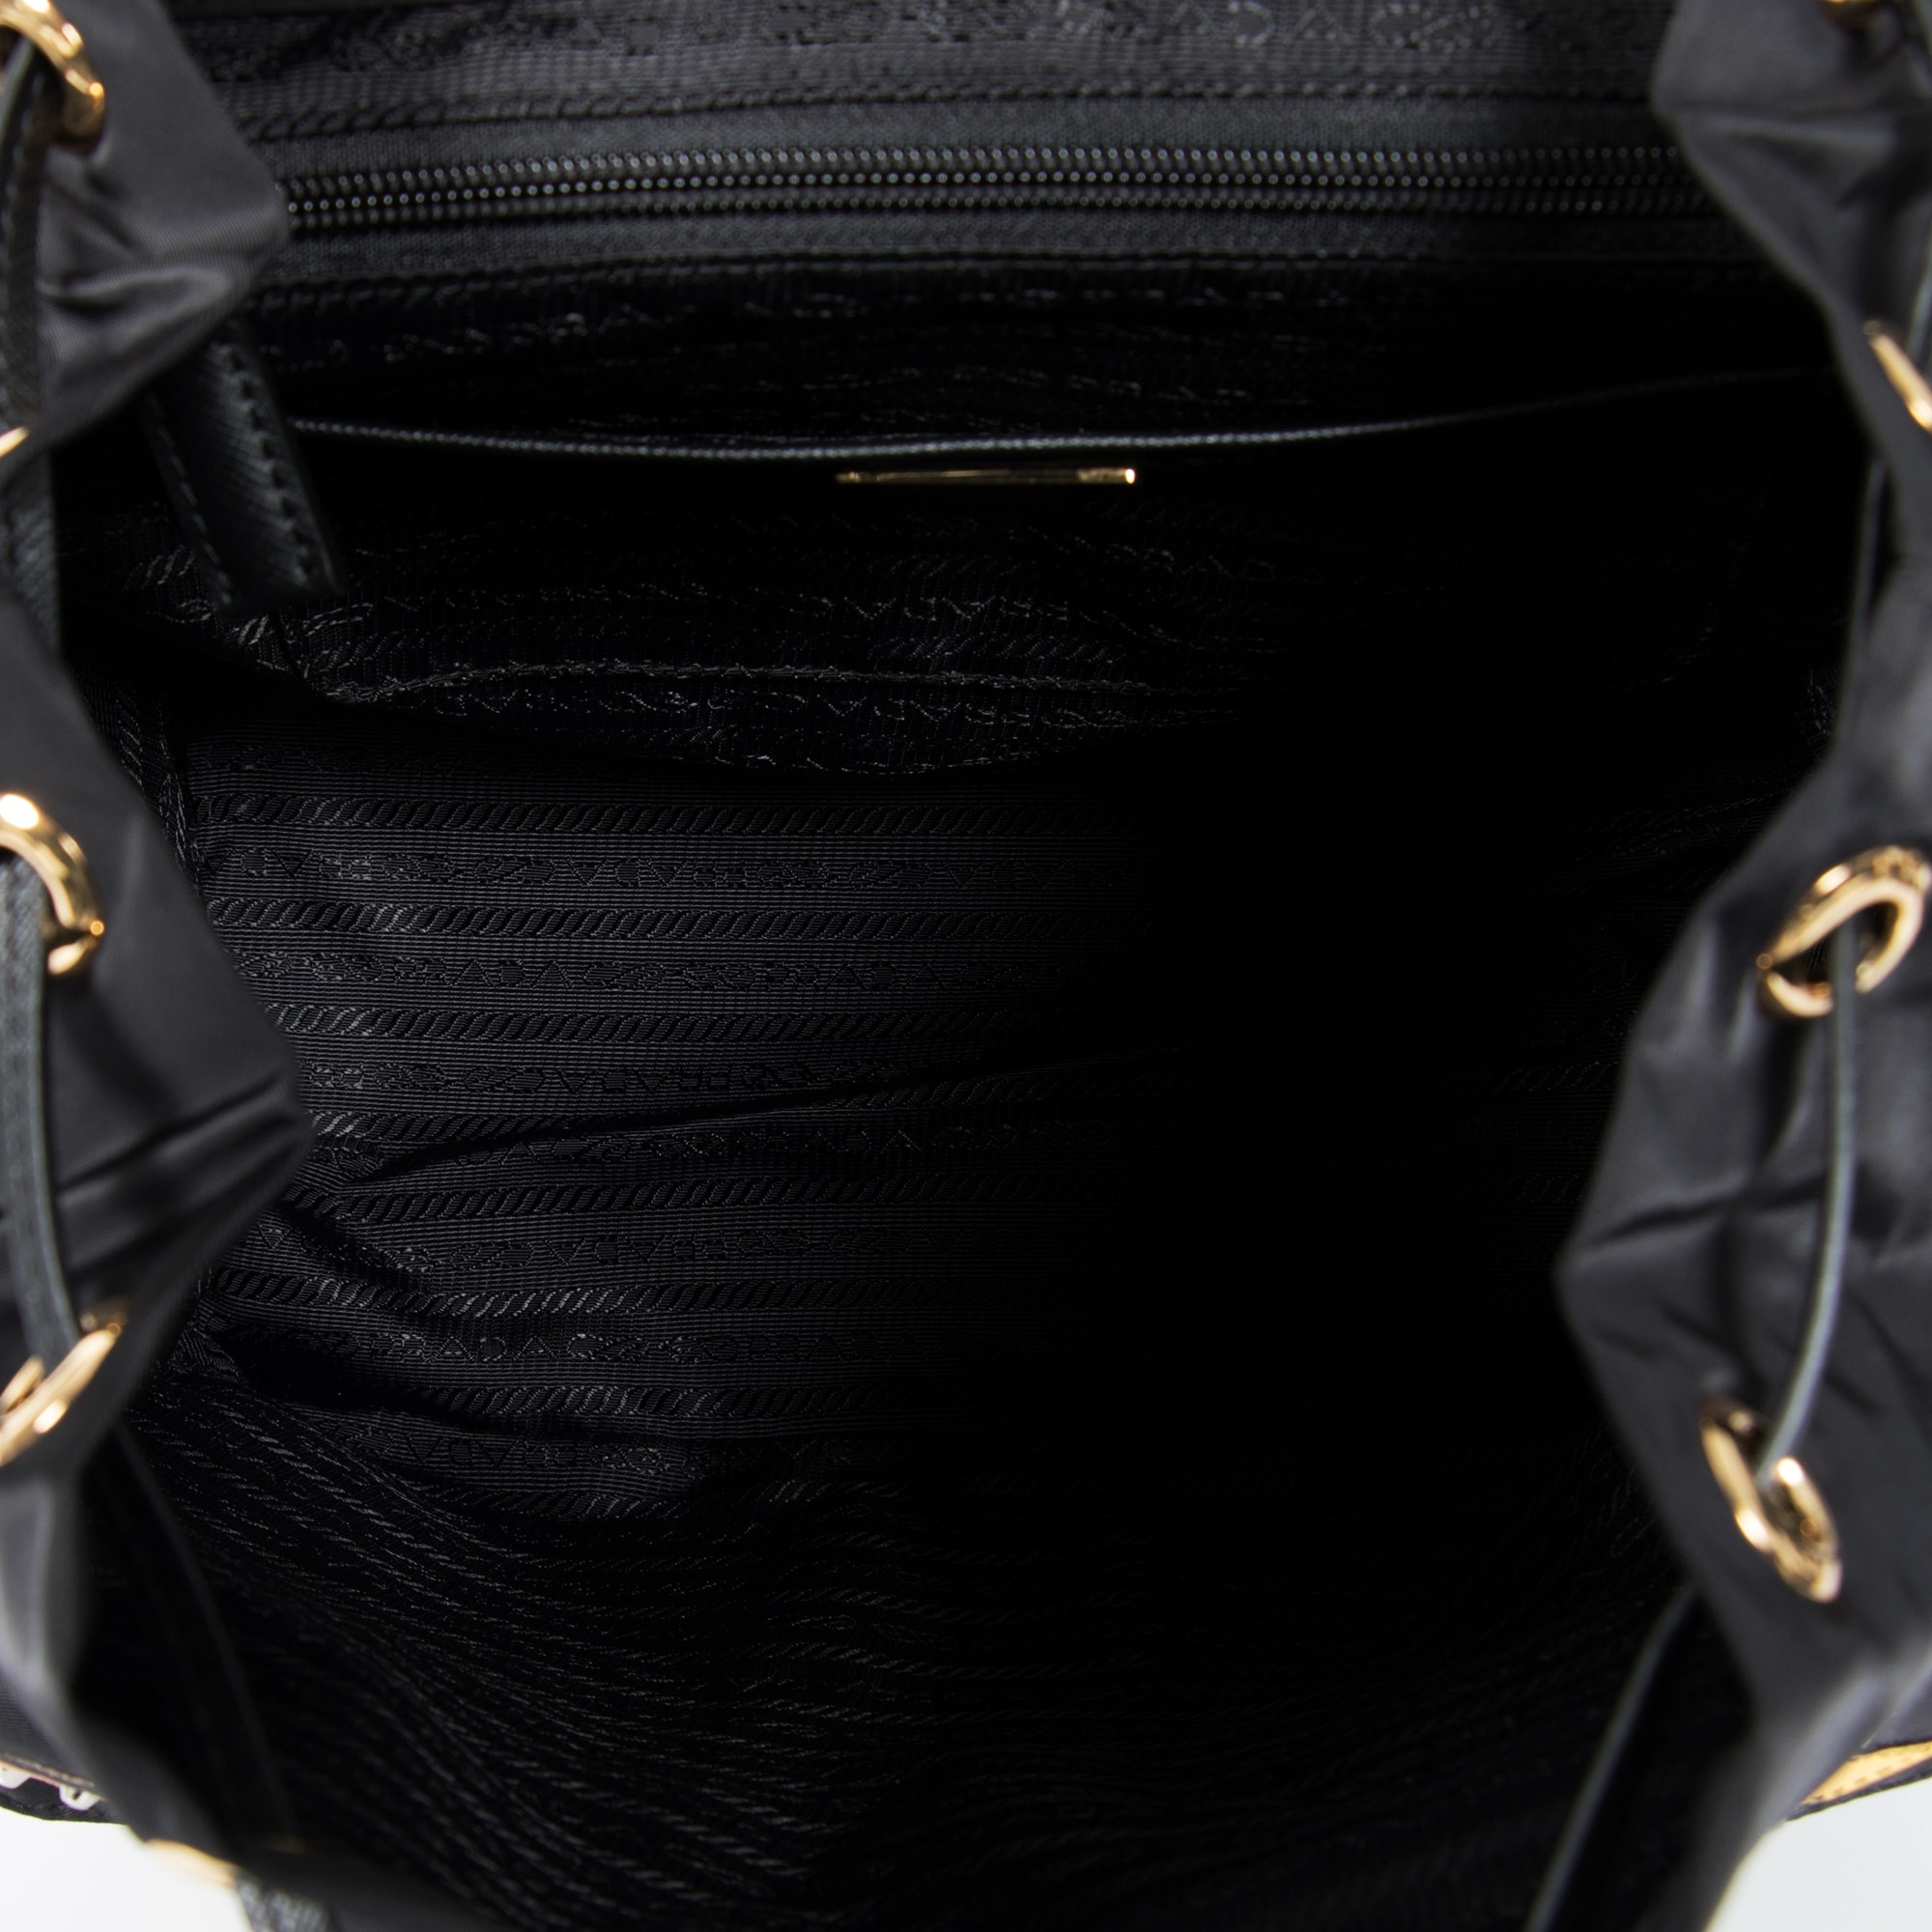 0e31aac327f3 Shop Prada Black Fabric Backpack With Robot Motif - Free Shipping Today -  Overstock - 23085386